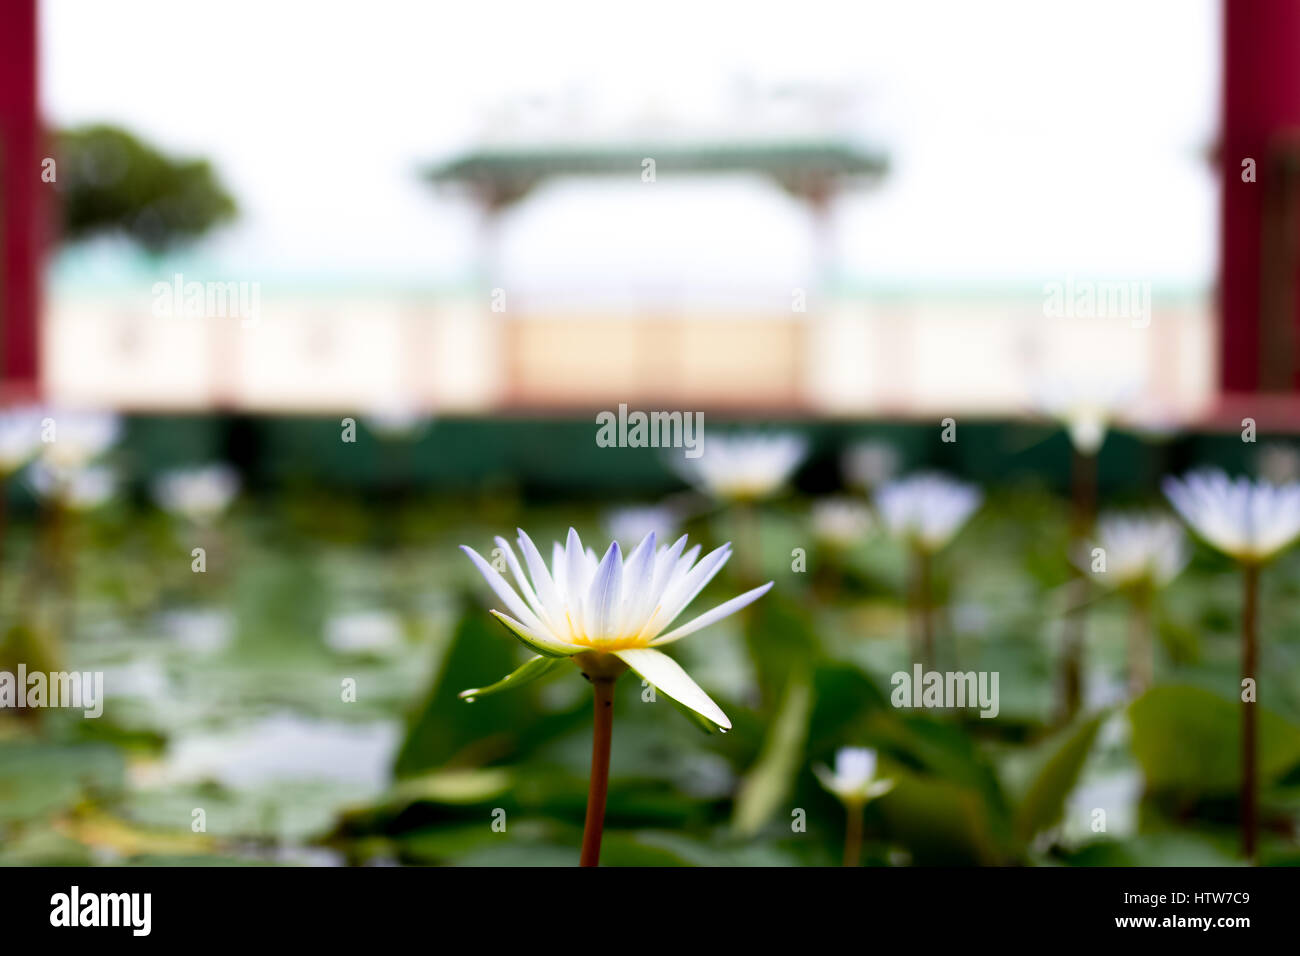 White lilys at a temple. - Stock Image